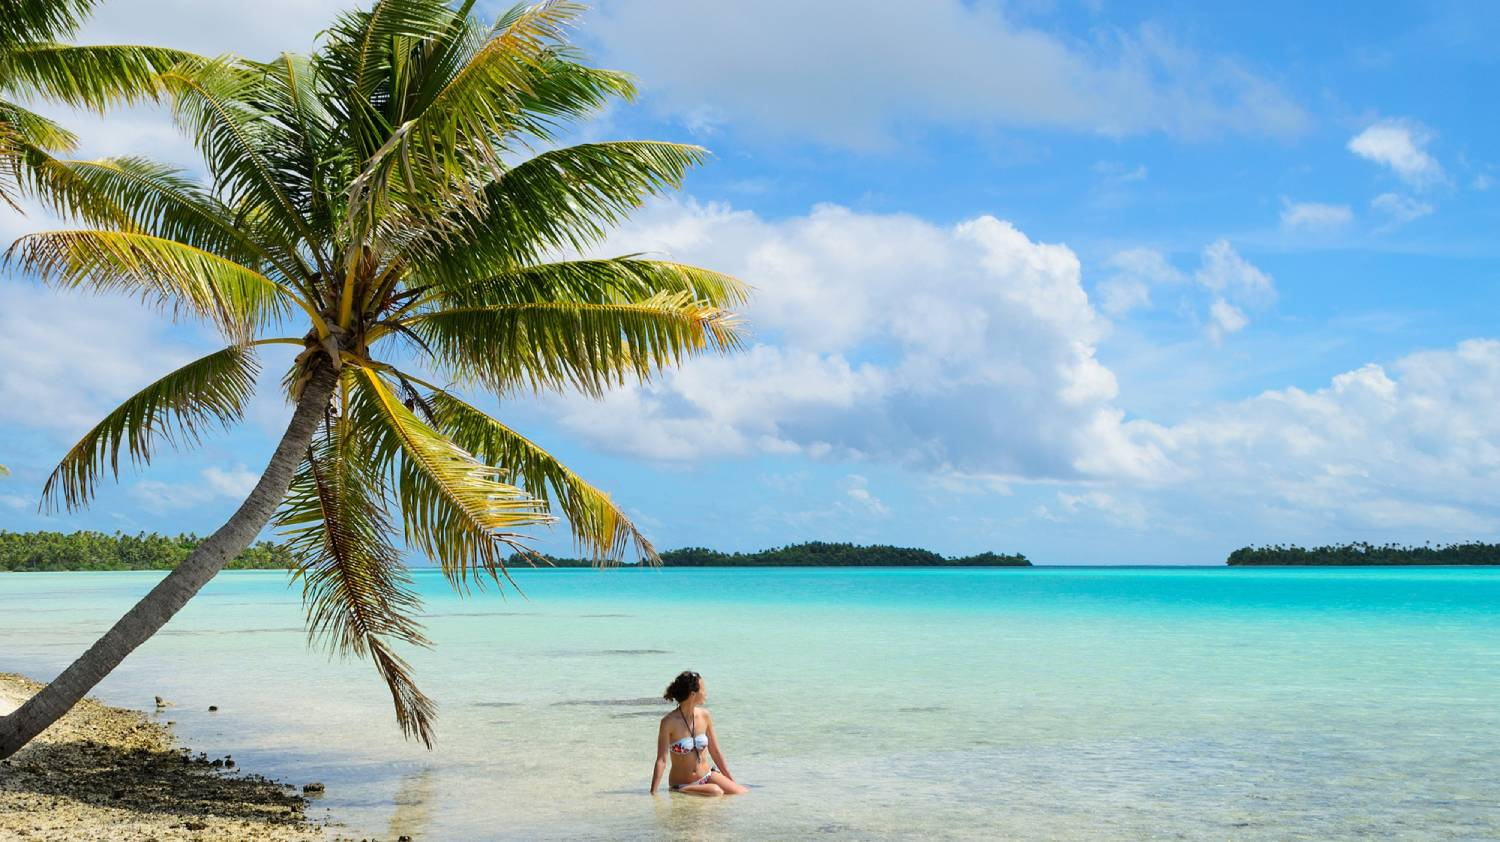 Rangiroa - The Best Places To Visit In French Polynesia